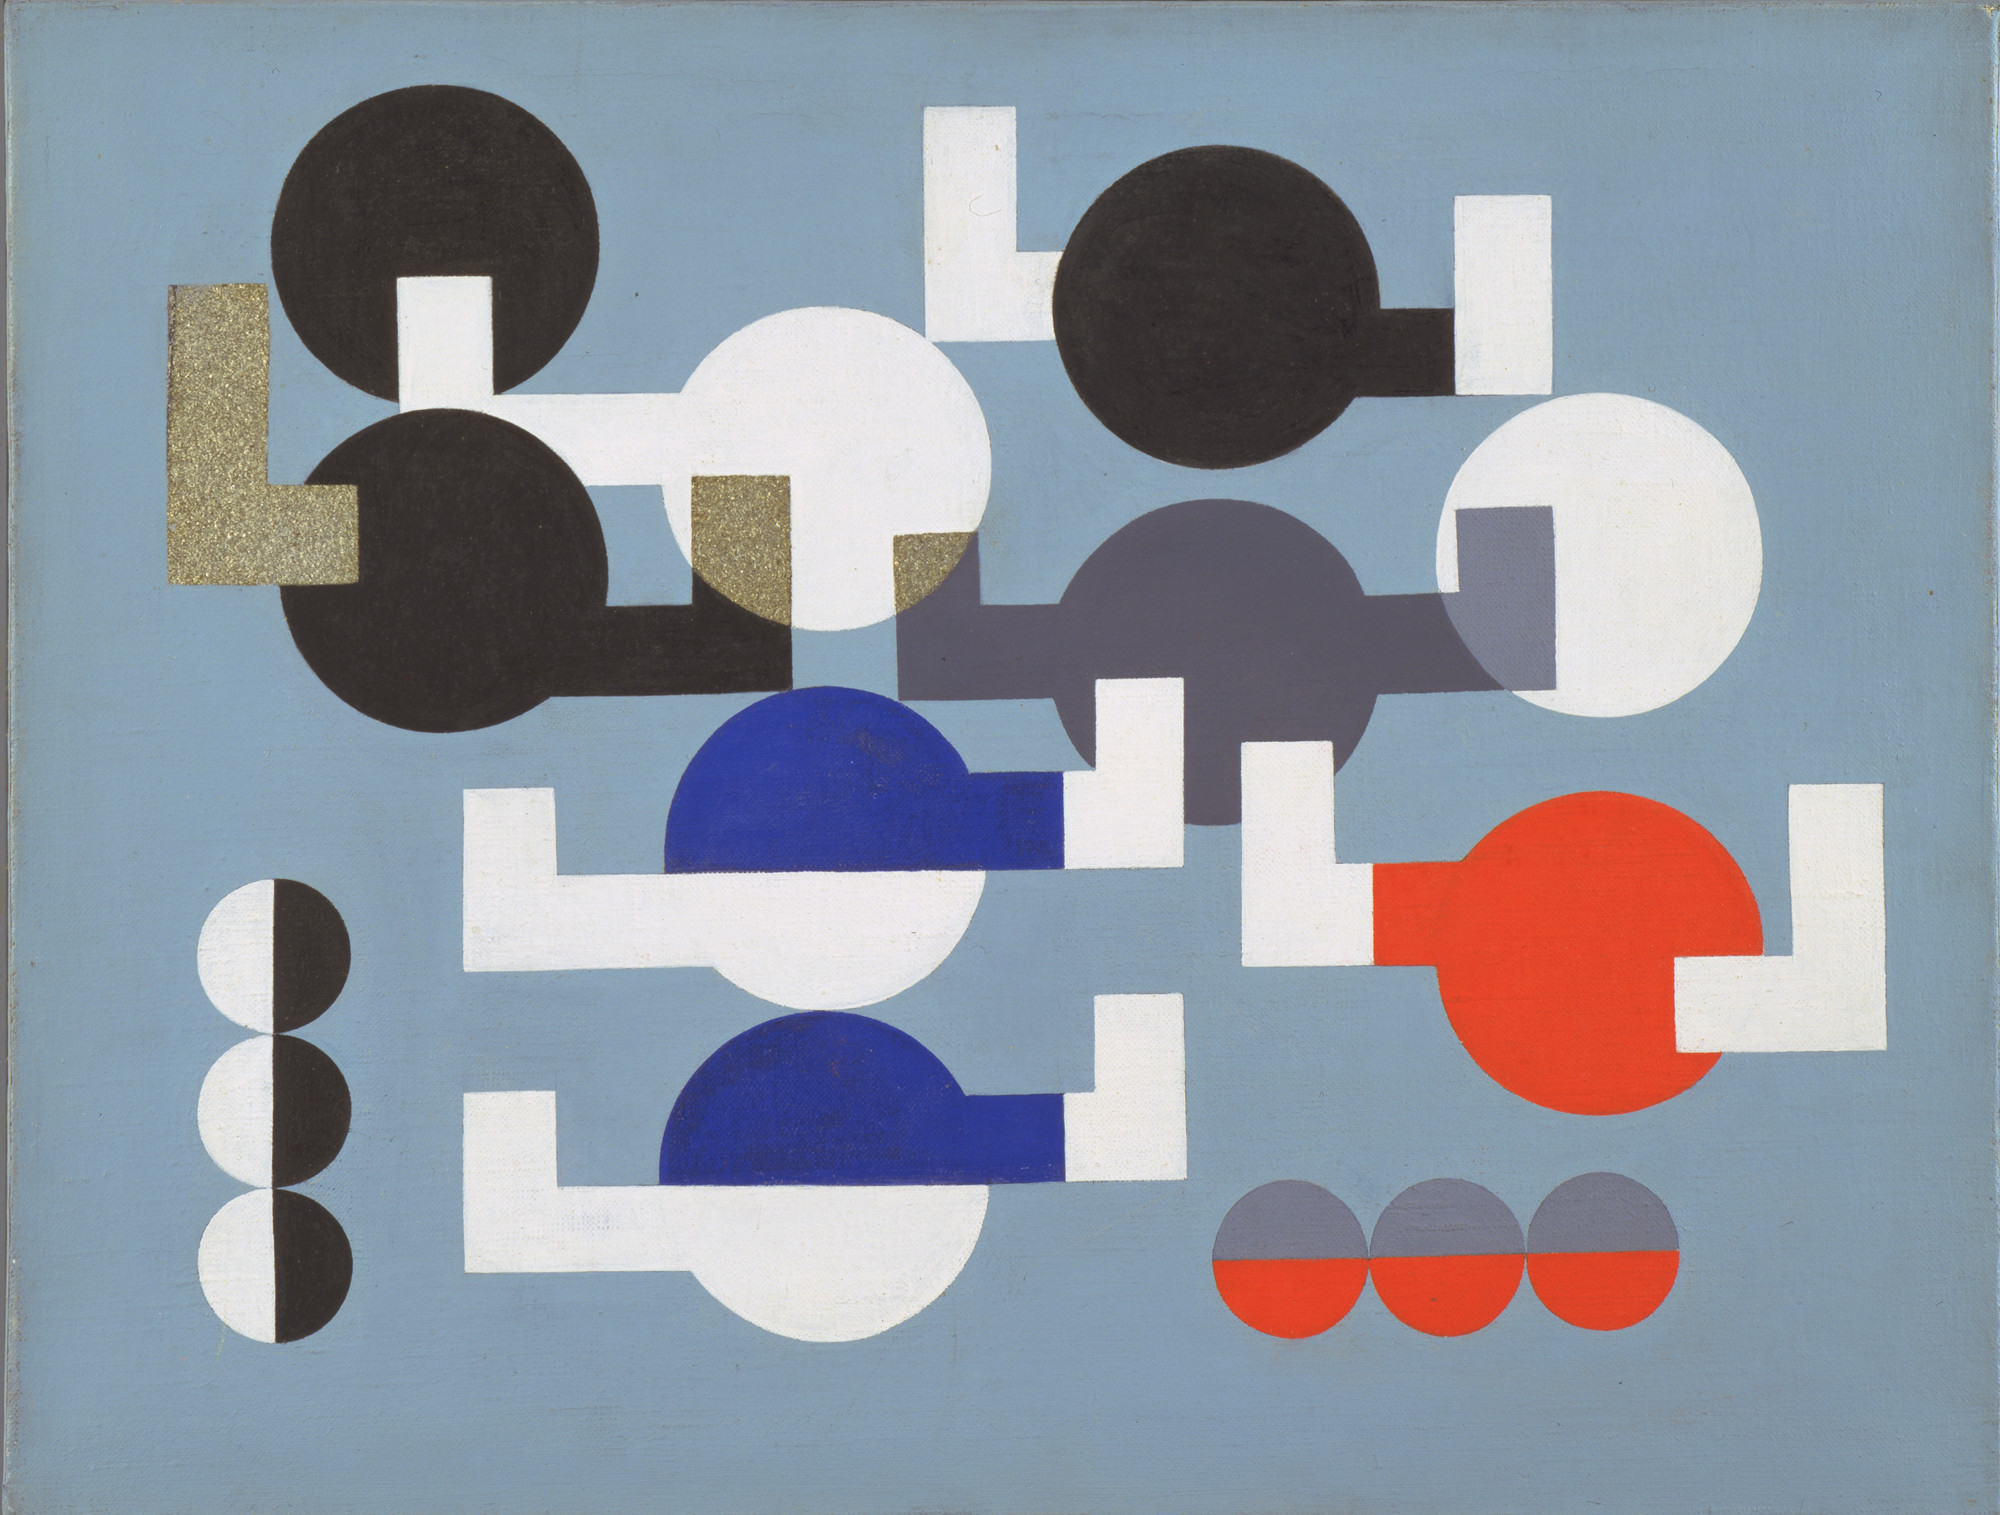 Sophie Taeuber-Arp. Composition of Circles and Overlapping Angles. 1930